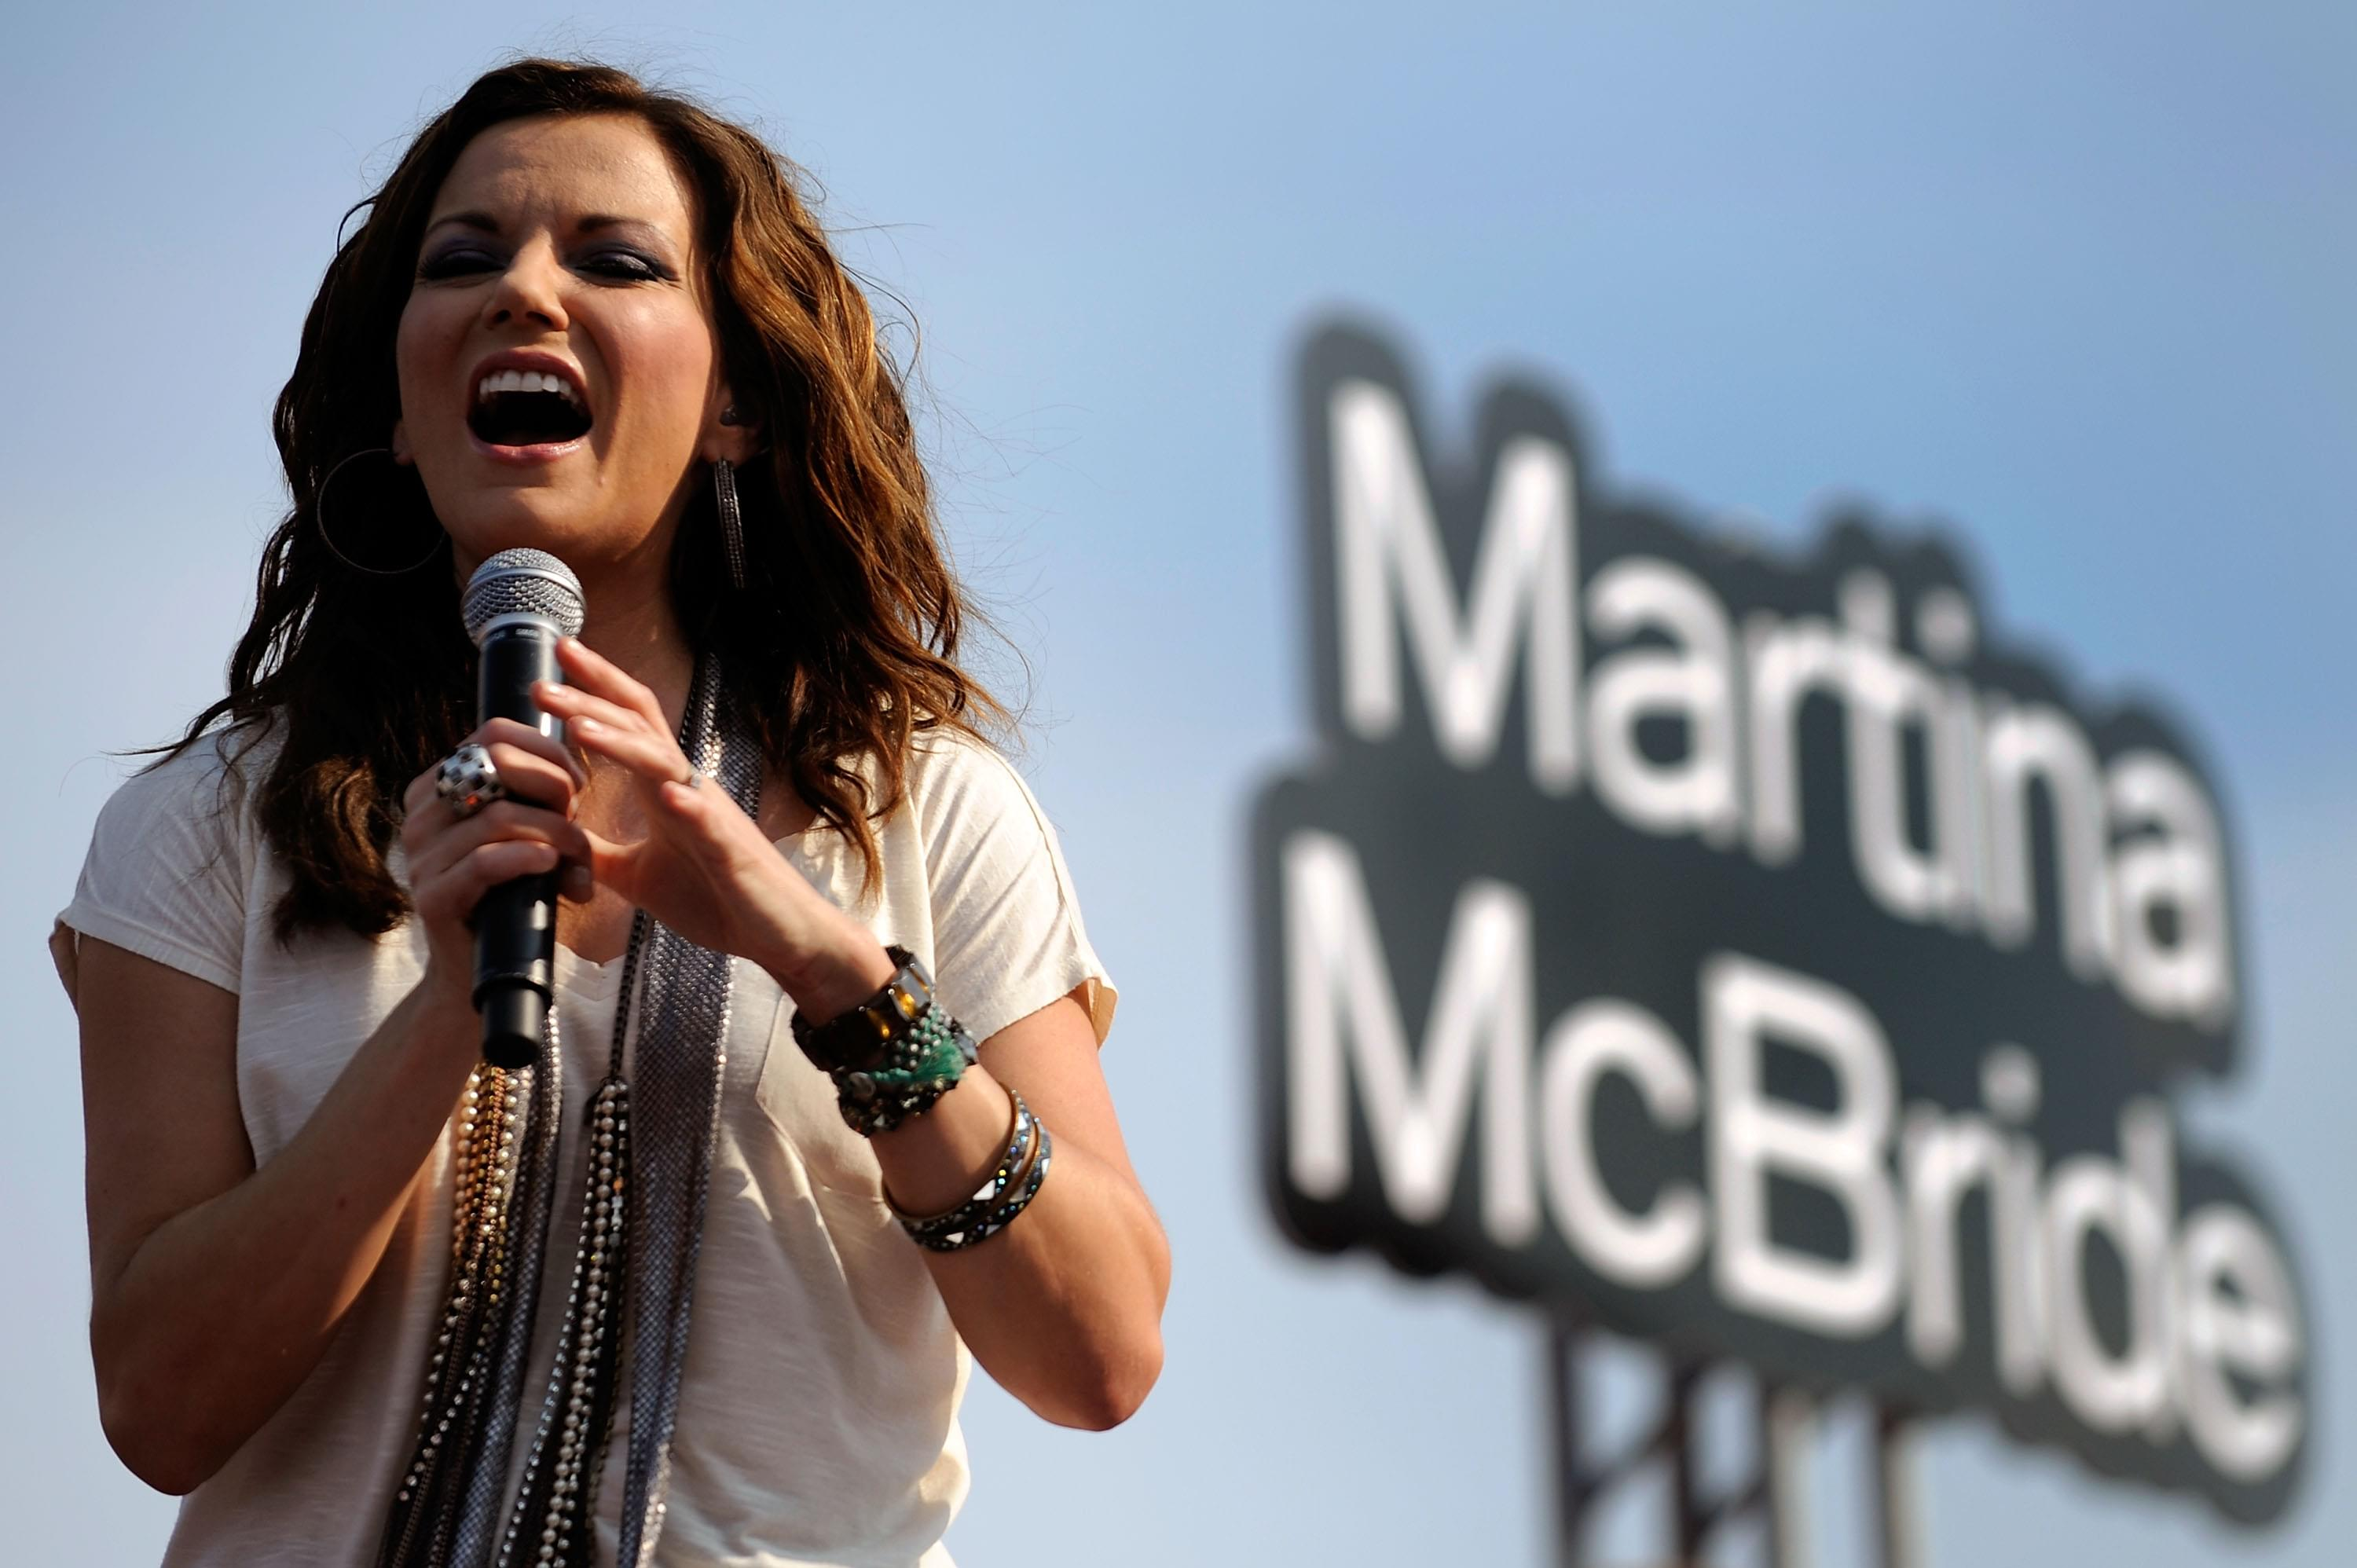 Martina McBride Is Coming To Brown County Music Center